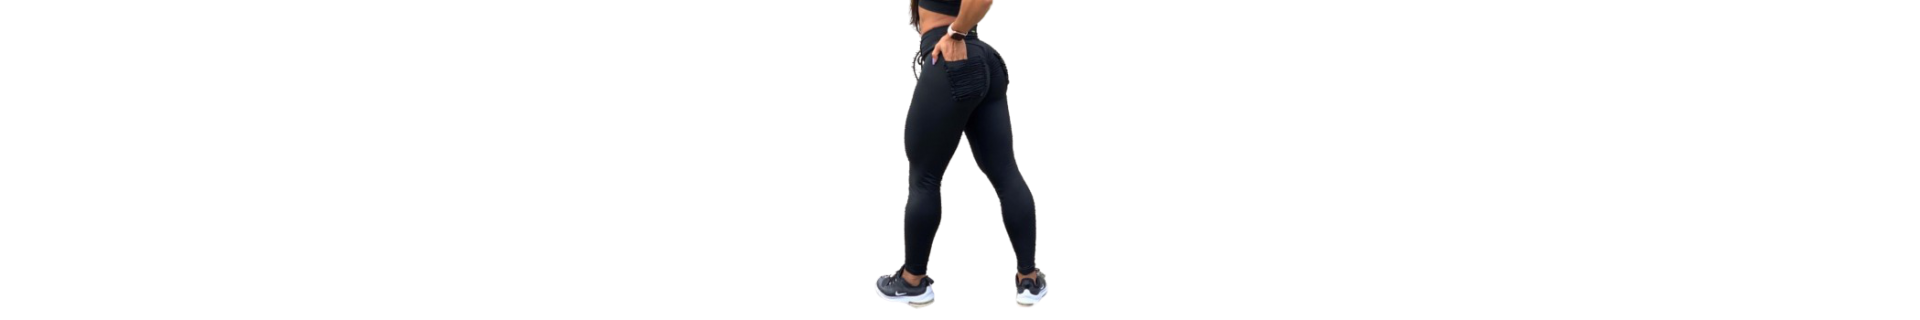 Solid leggings: printed or logged-in on the basis of a single color